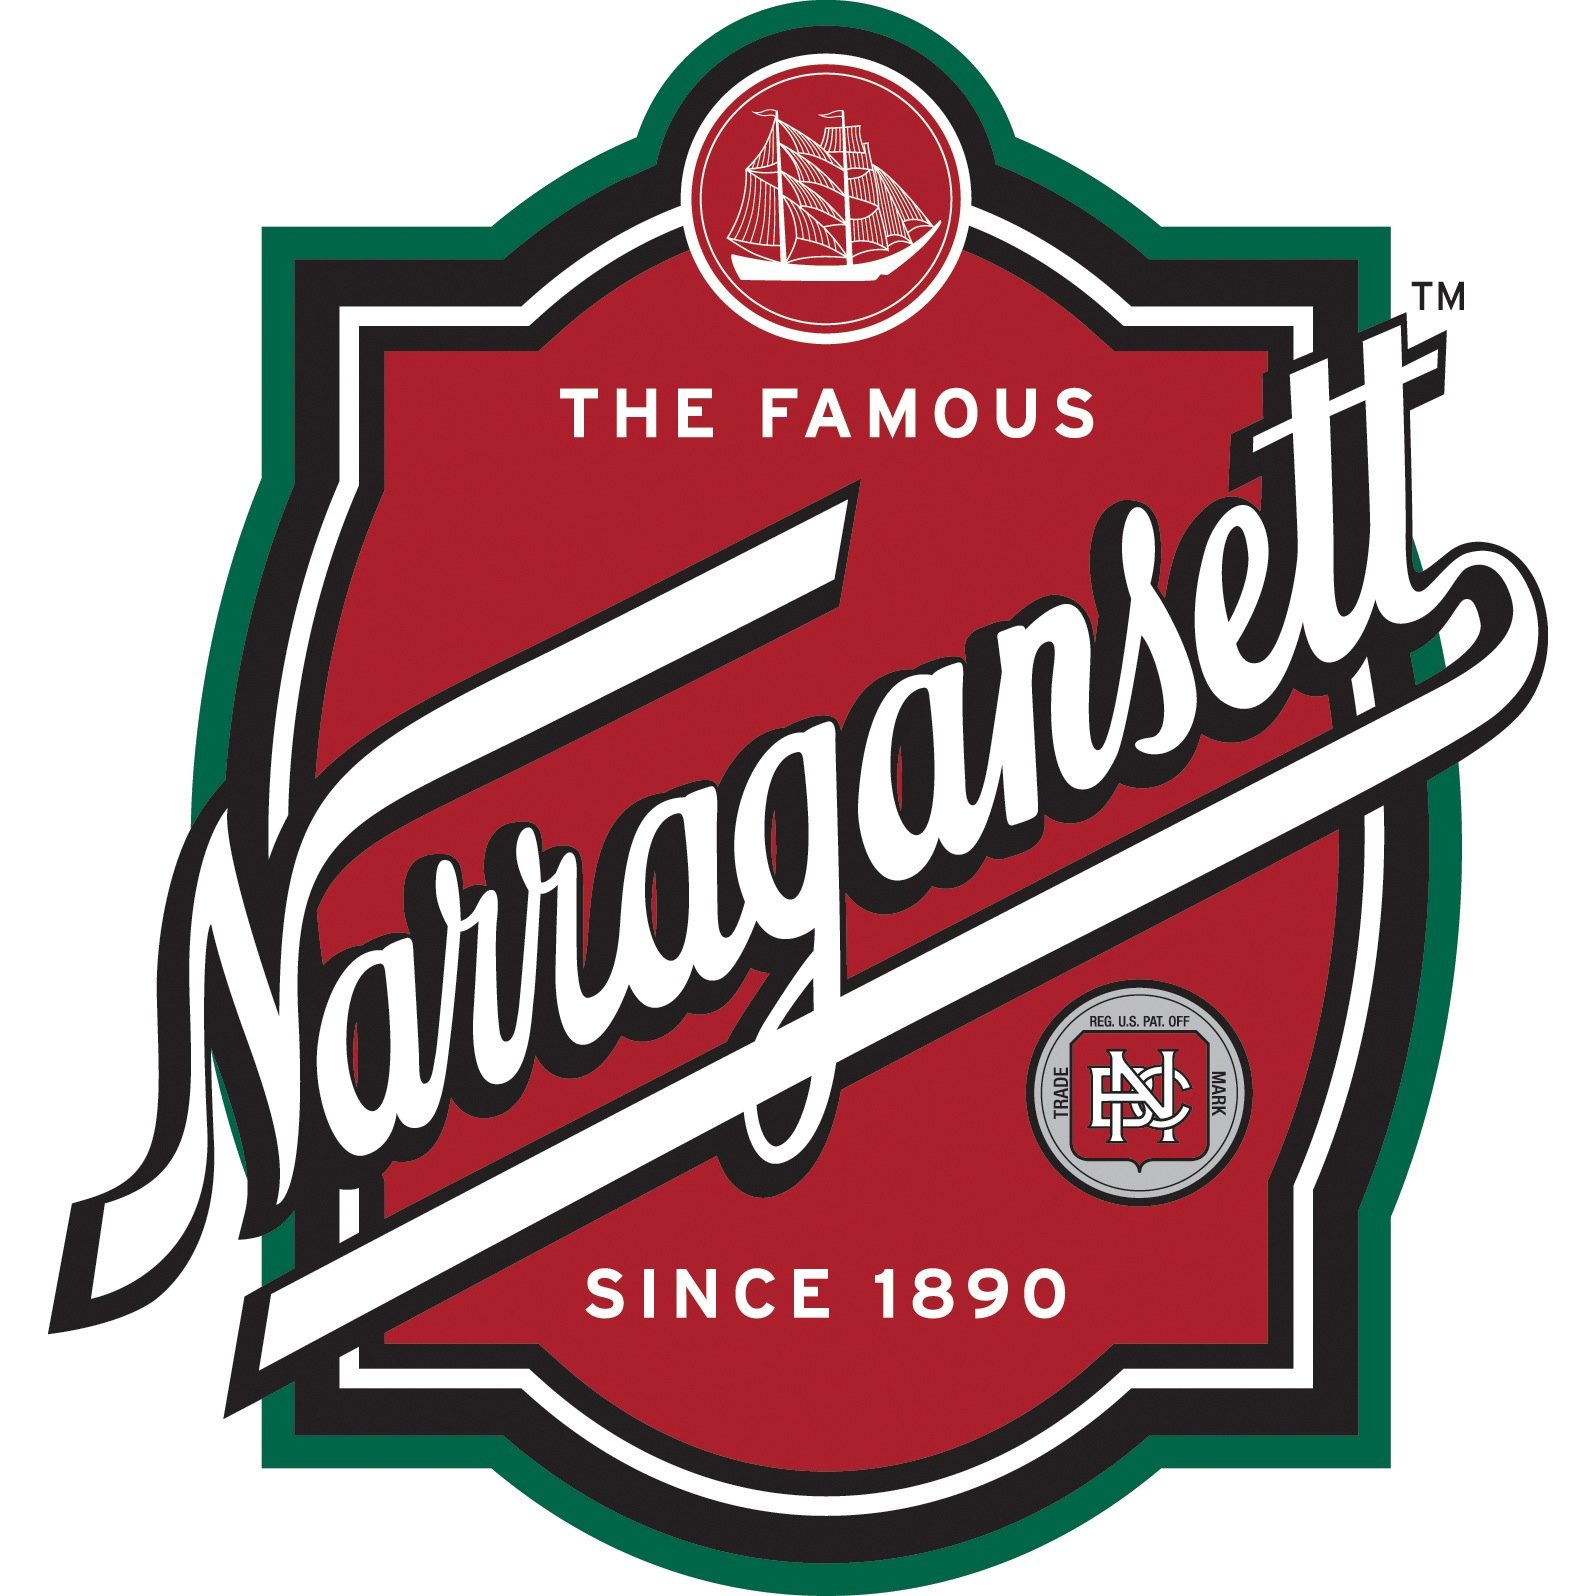 National Chain Account Sales Manager - Narragansett Brewing Company